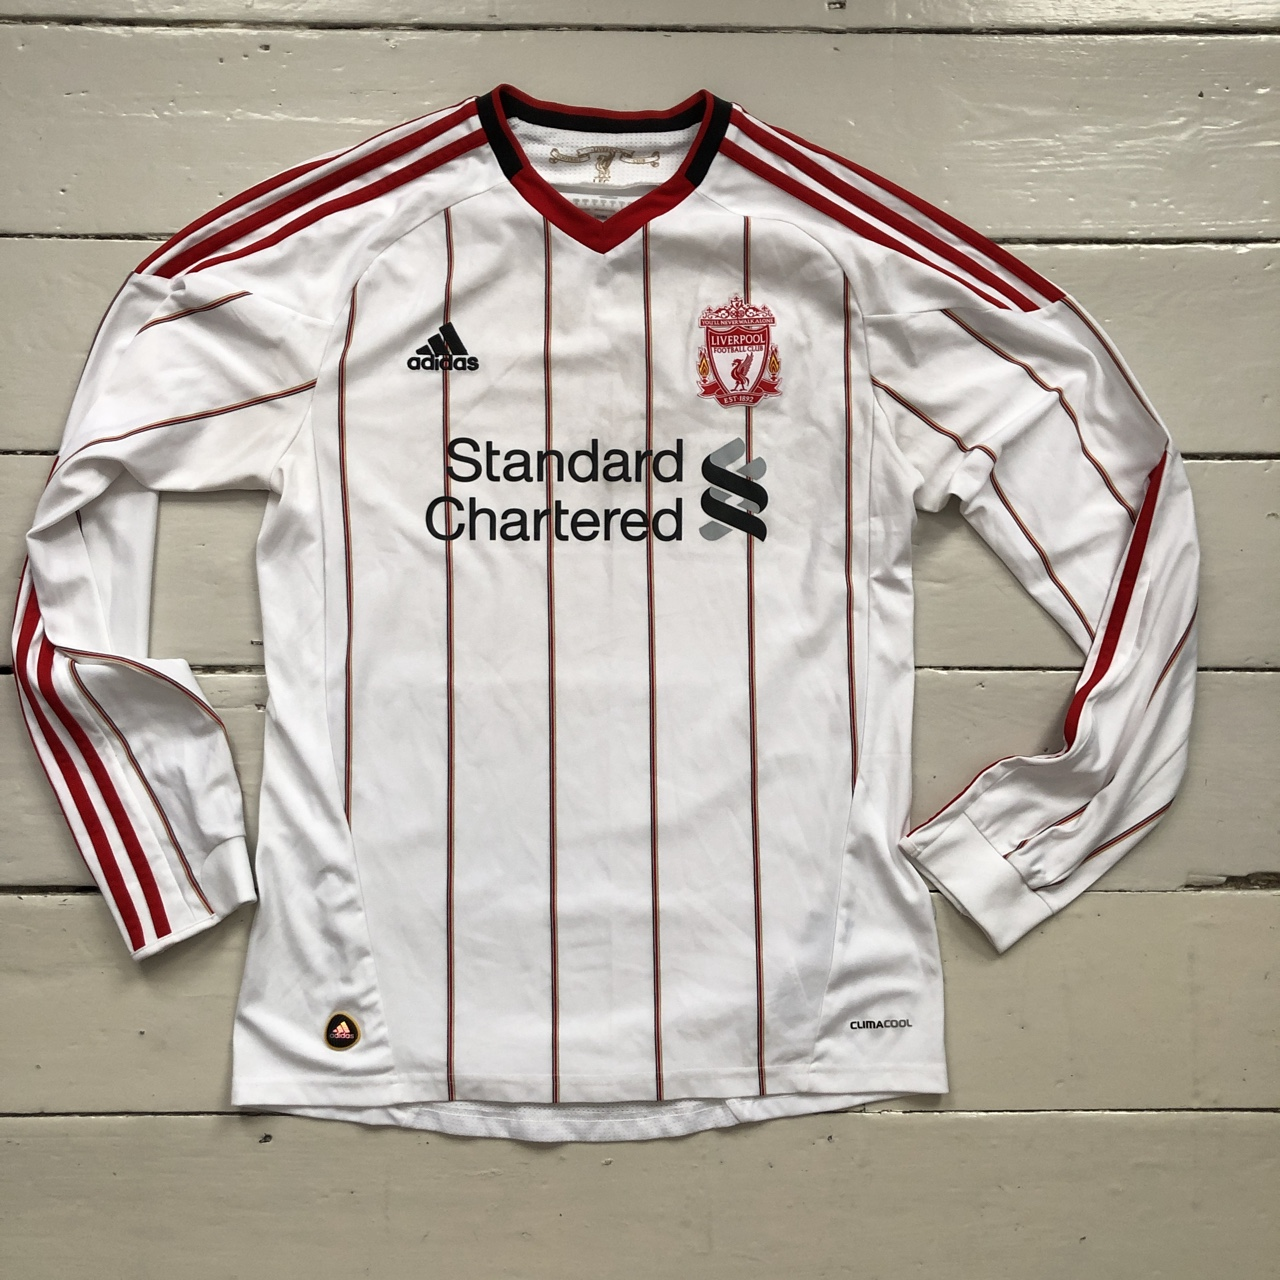 promo code 2db3c b29c8 Adidas Standard chartered Liverpool FC long sleeved ...